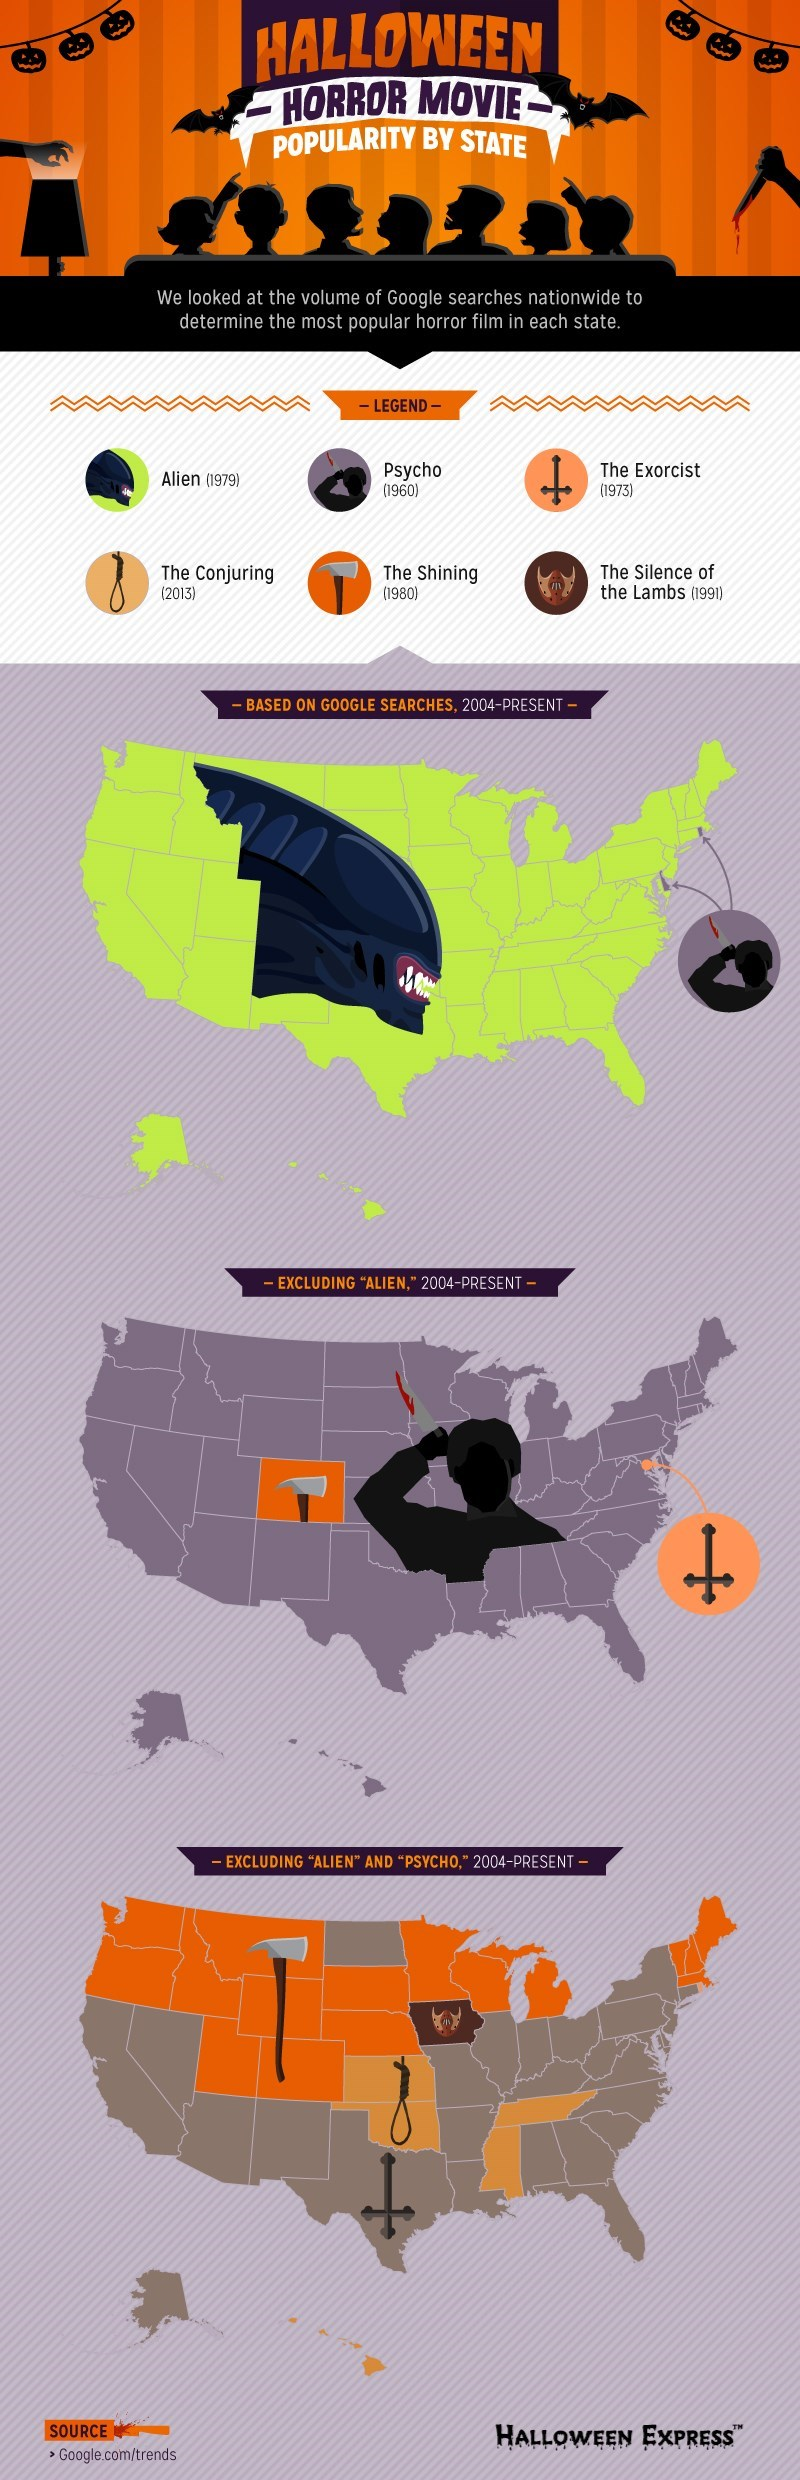 halloween memes popular horror movies by state